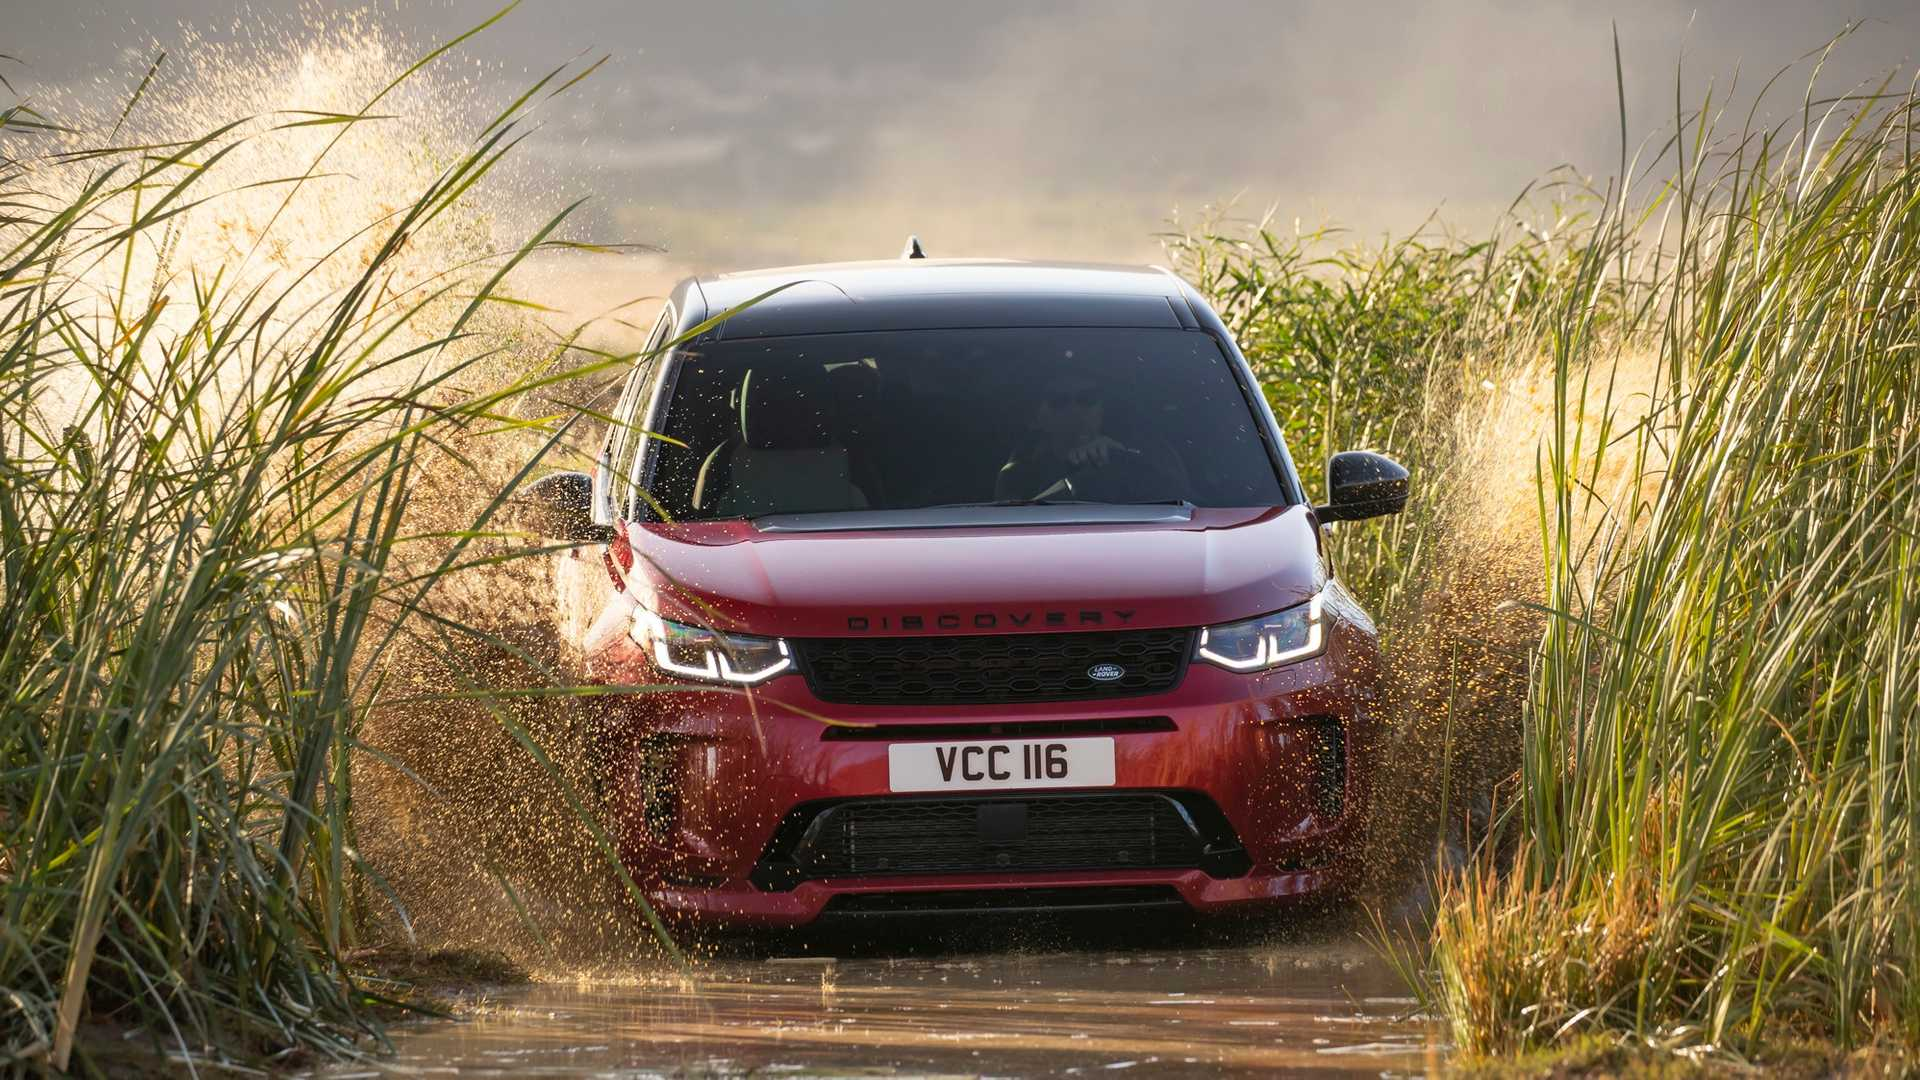 2020-land-rover-discovery-sport (27).jpg